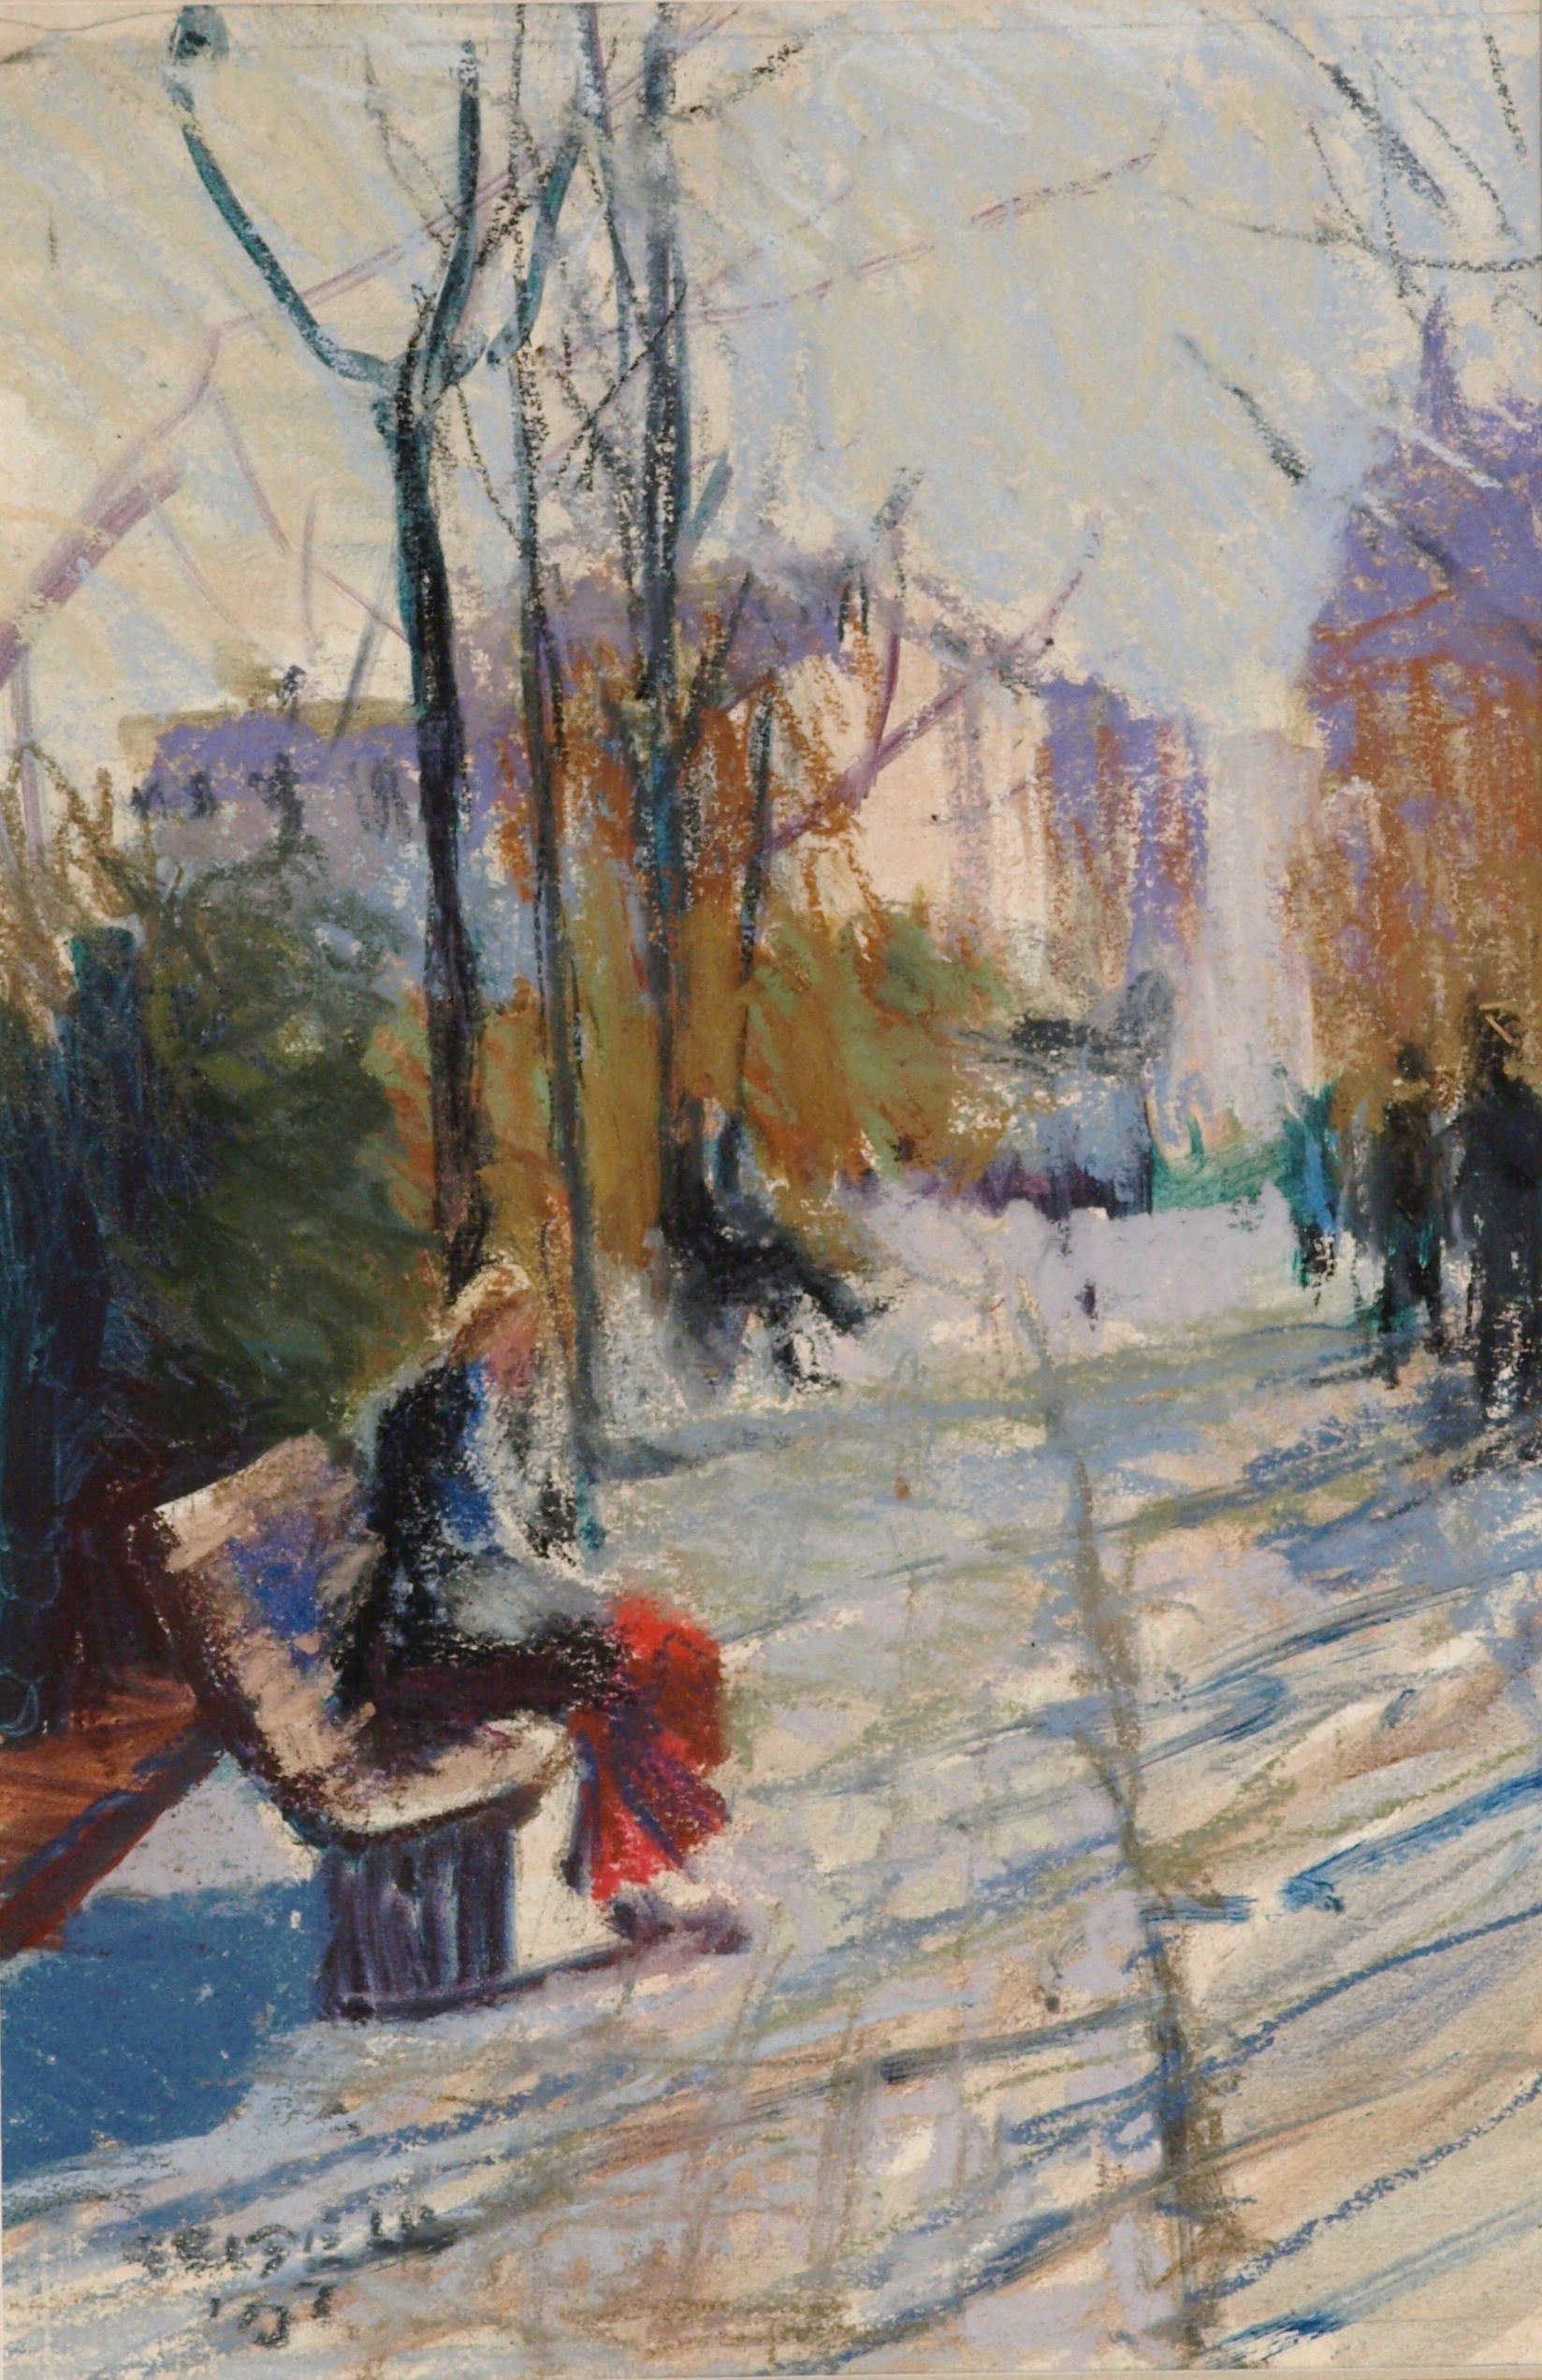 Park Bench - Paris, Matted Pastel on Paper, 10 x 7 Inches, by Susan Grisell, $250